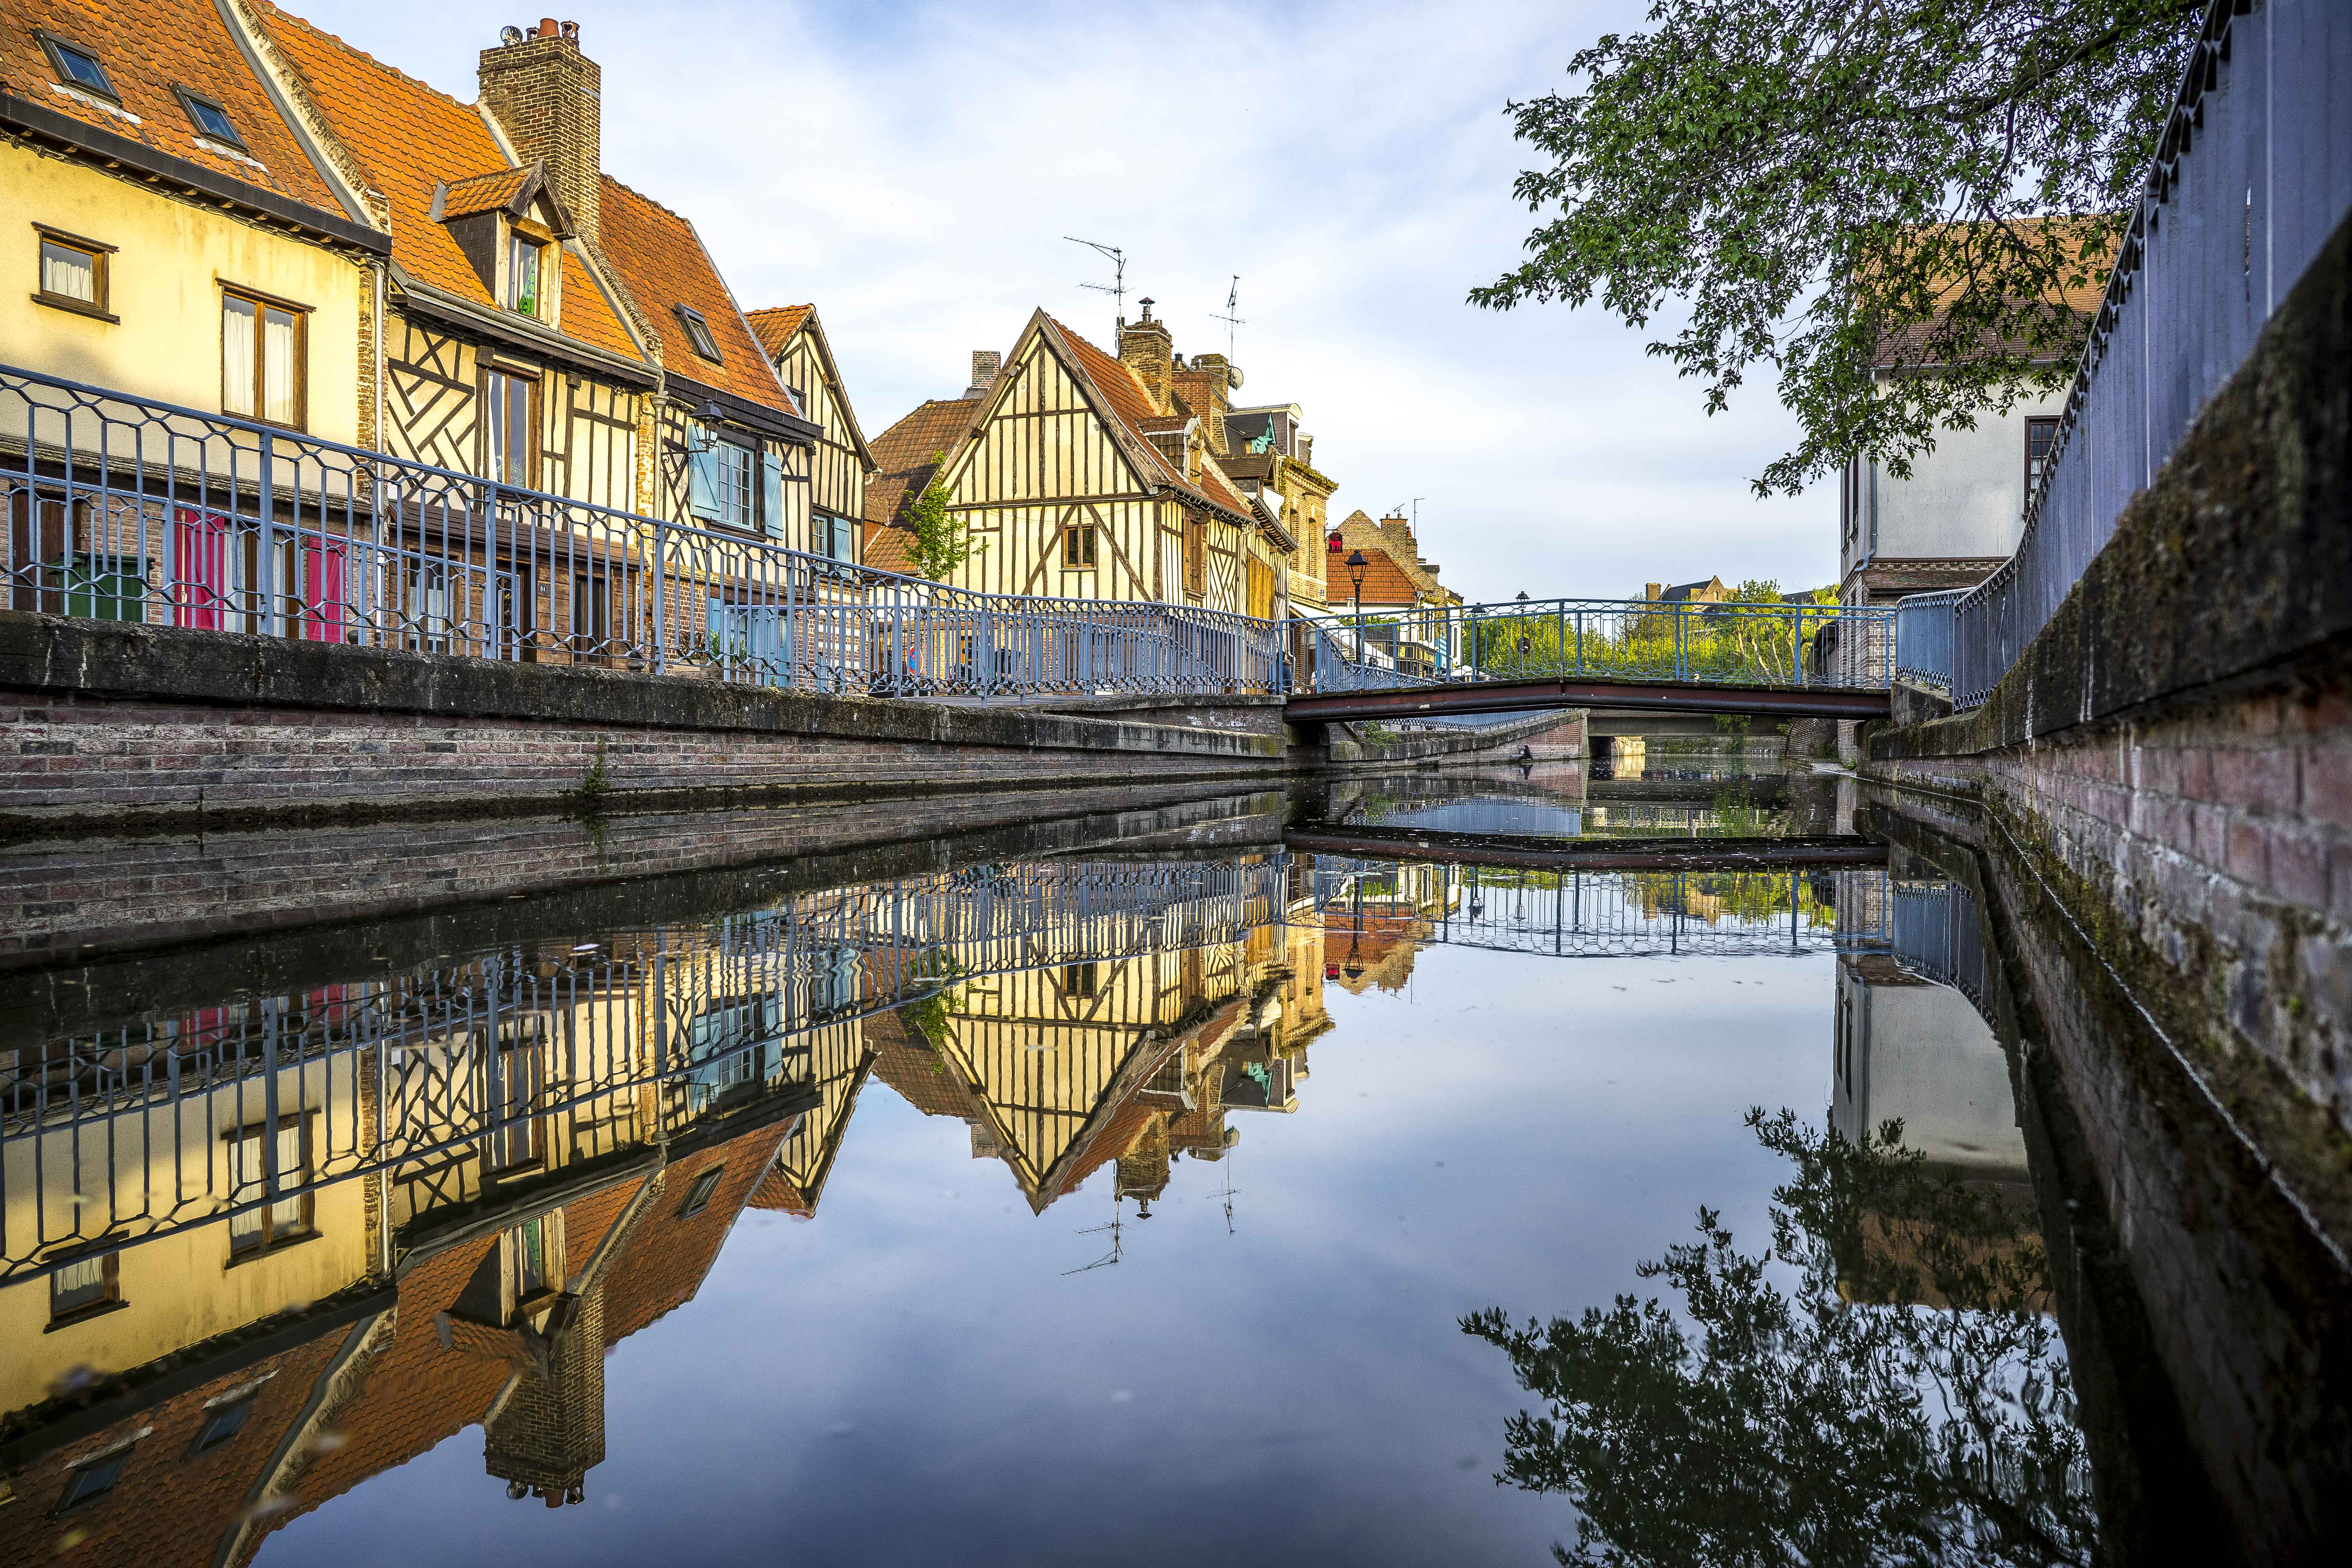 Amiens - Old half-timbered houses on the banks of the Somme